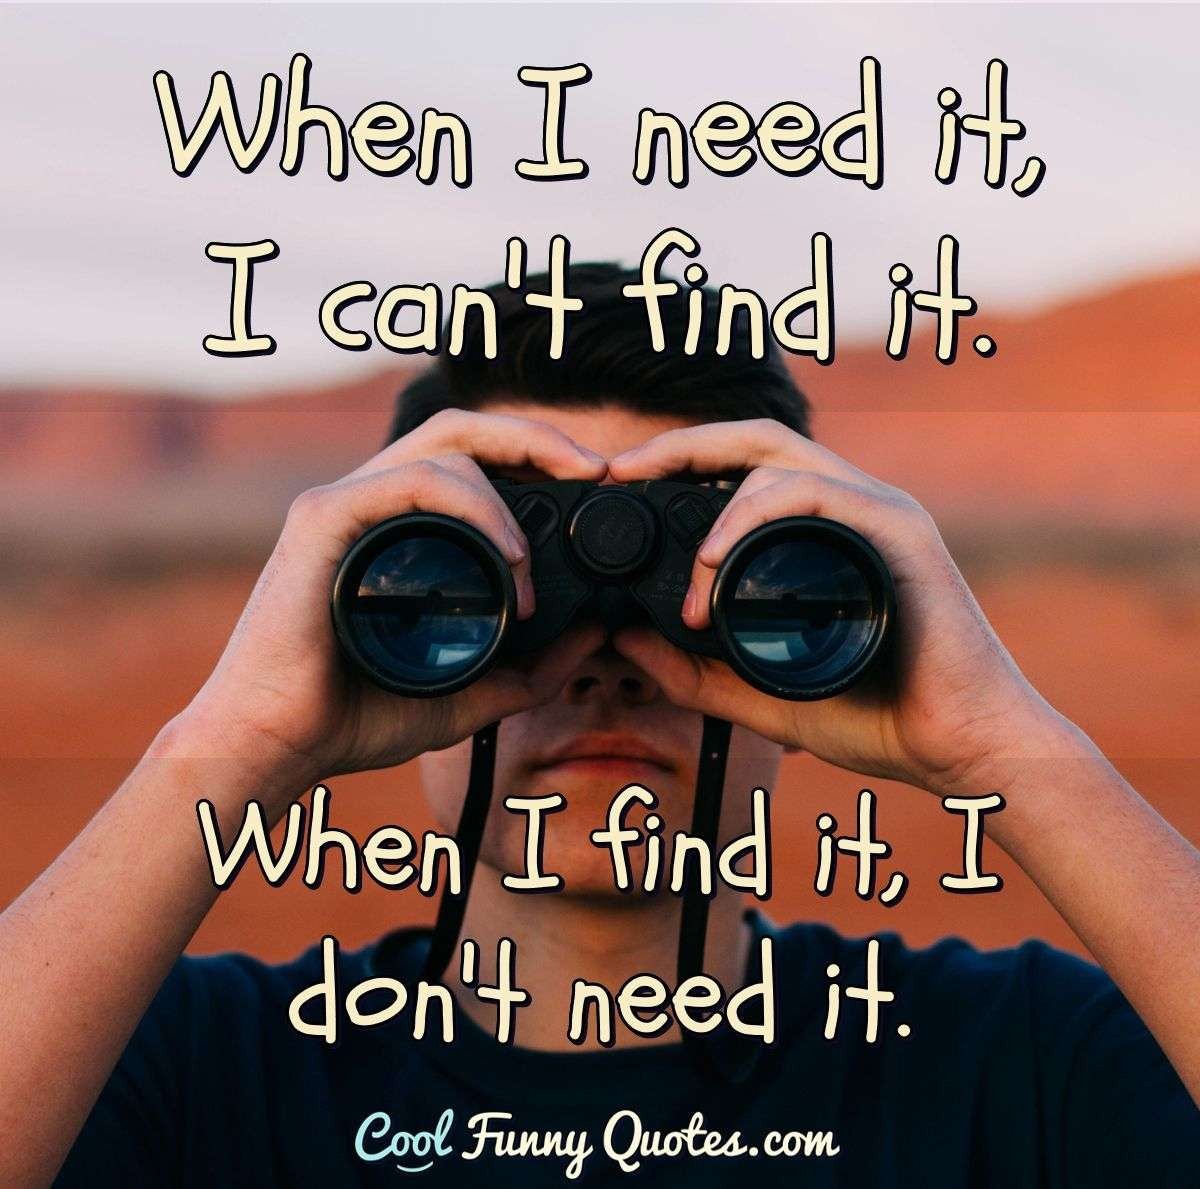 When I find it, I don't need it. When I need it, I can't find it. - Anonymous